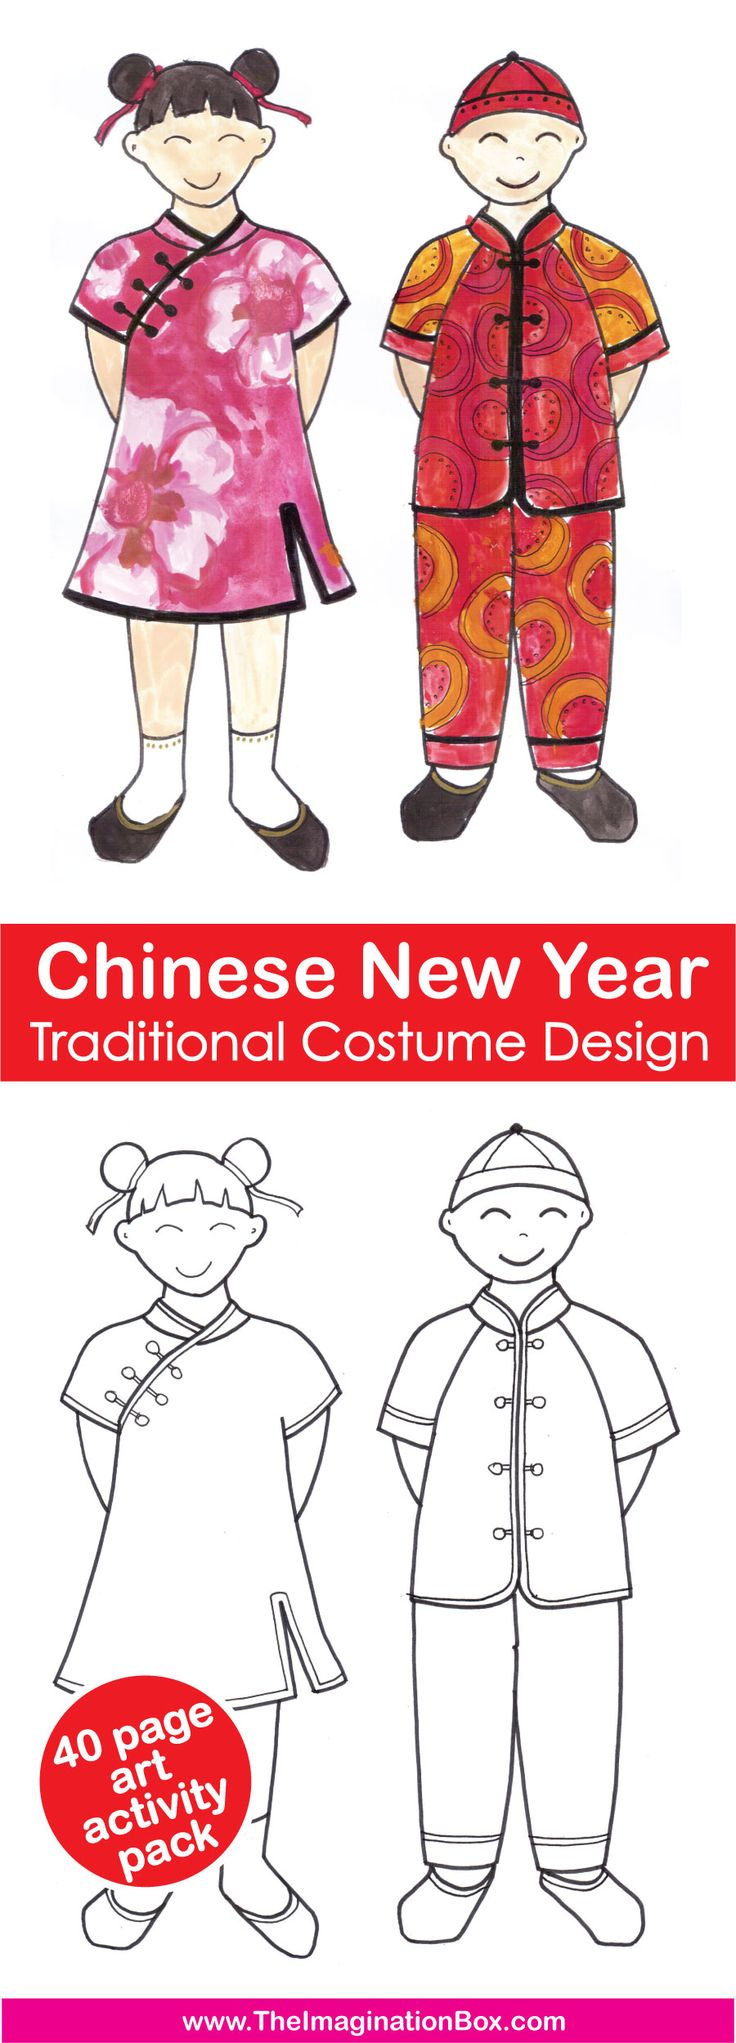 The 60 best Chinese new year 2018 images on Pinterest   Infant ...